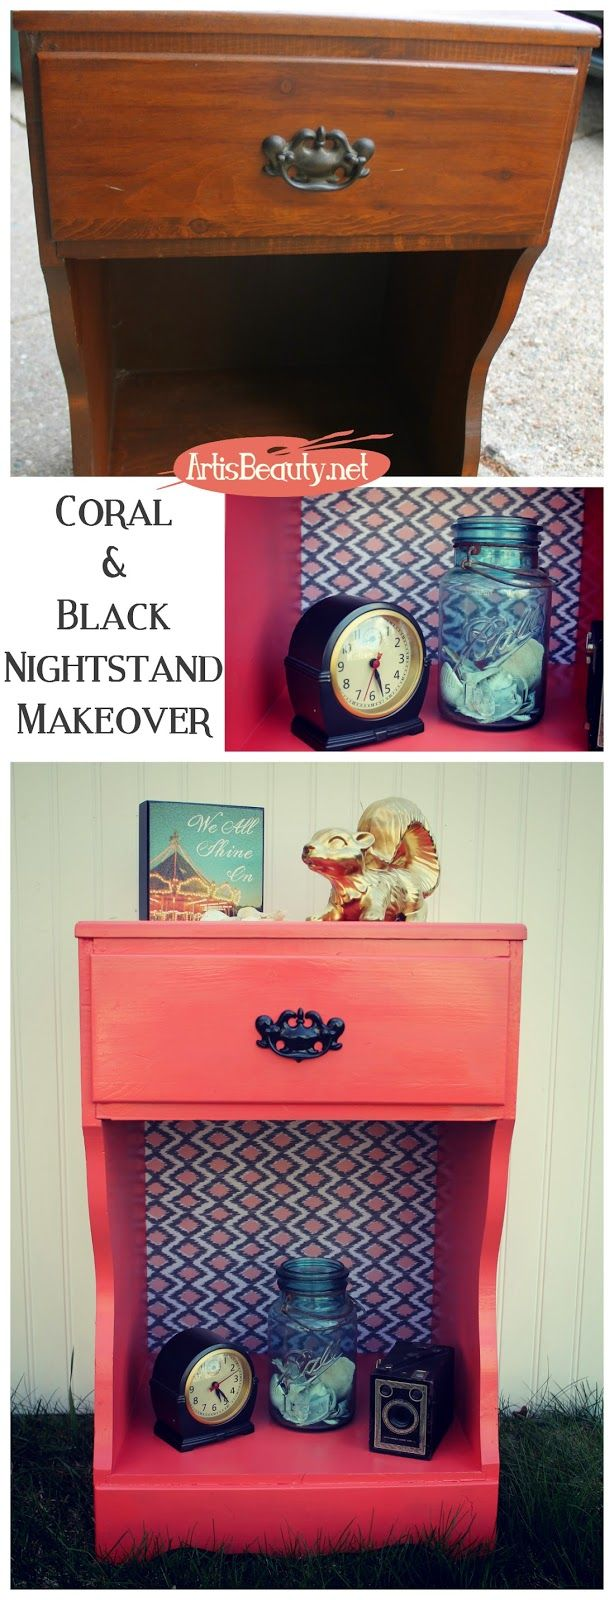 ART IS BEAUTY: Coral and Black Painted and Papered Nightstand Makeover